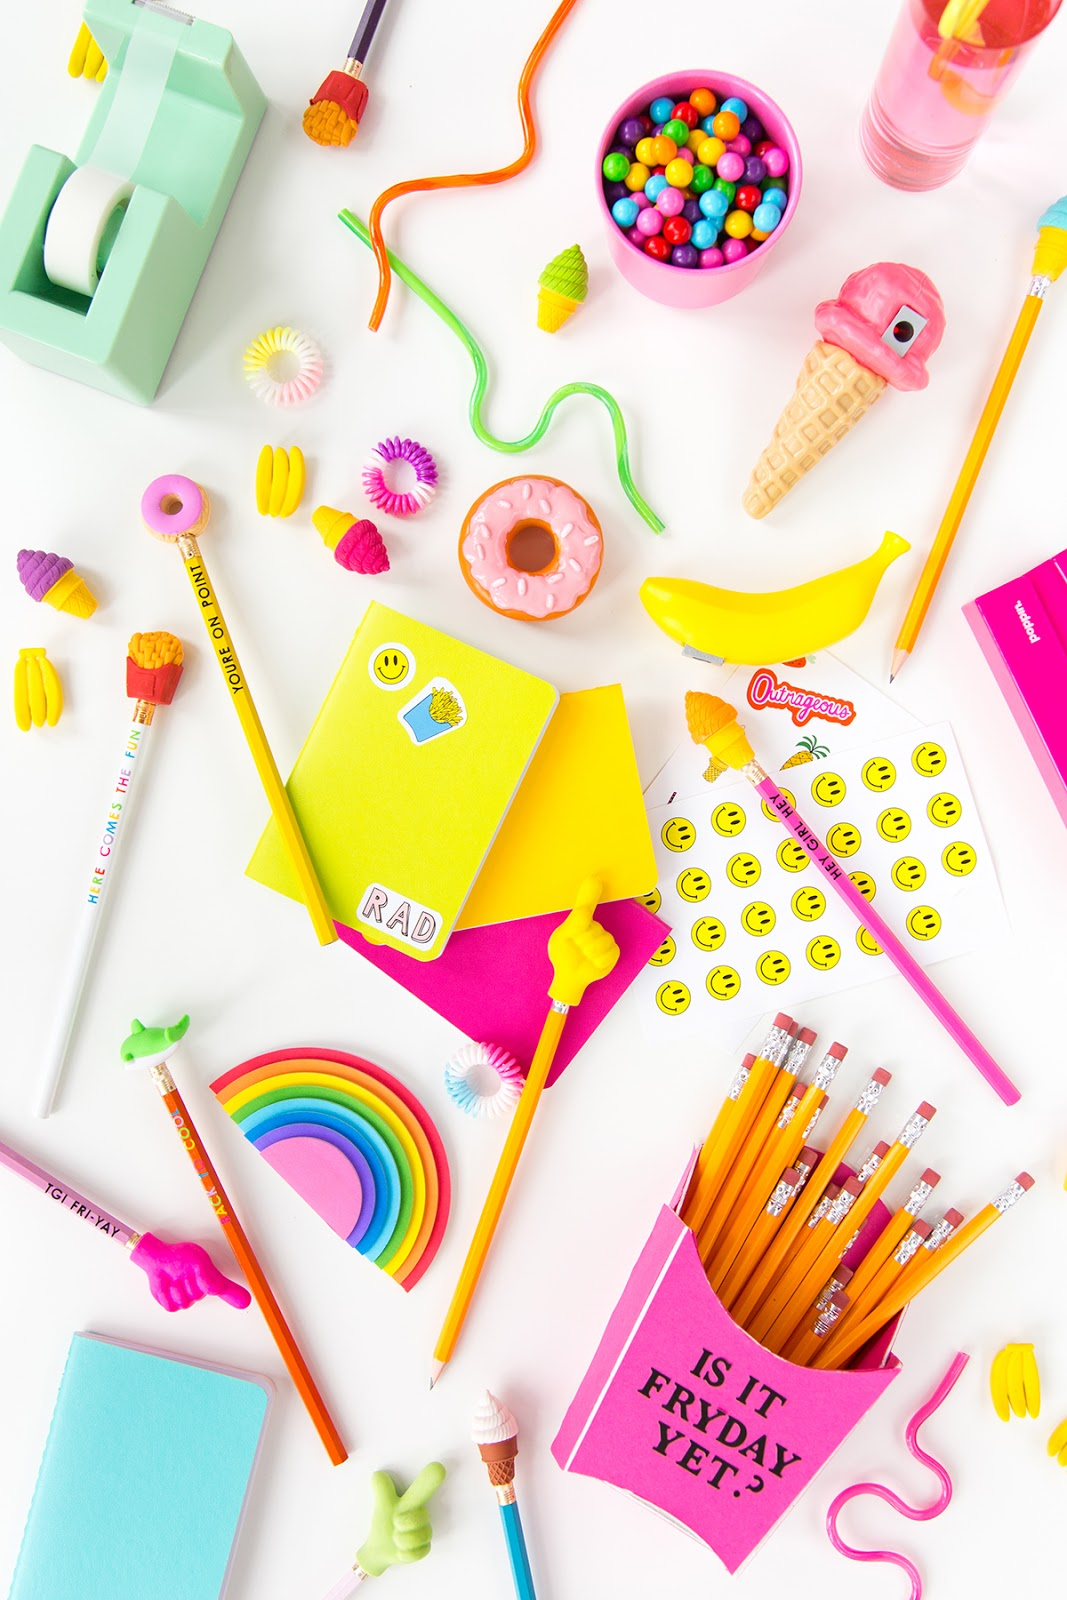 School Supplies DIY Ideas - oh yes we ADORE stationery, school supplies and anything back to school related. I always had a thing about stationery when young and loved making school supplies diys or personalising my stationery.